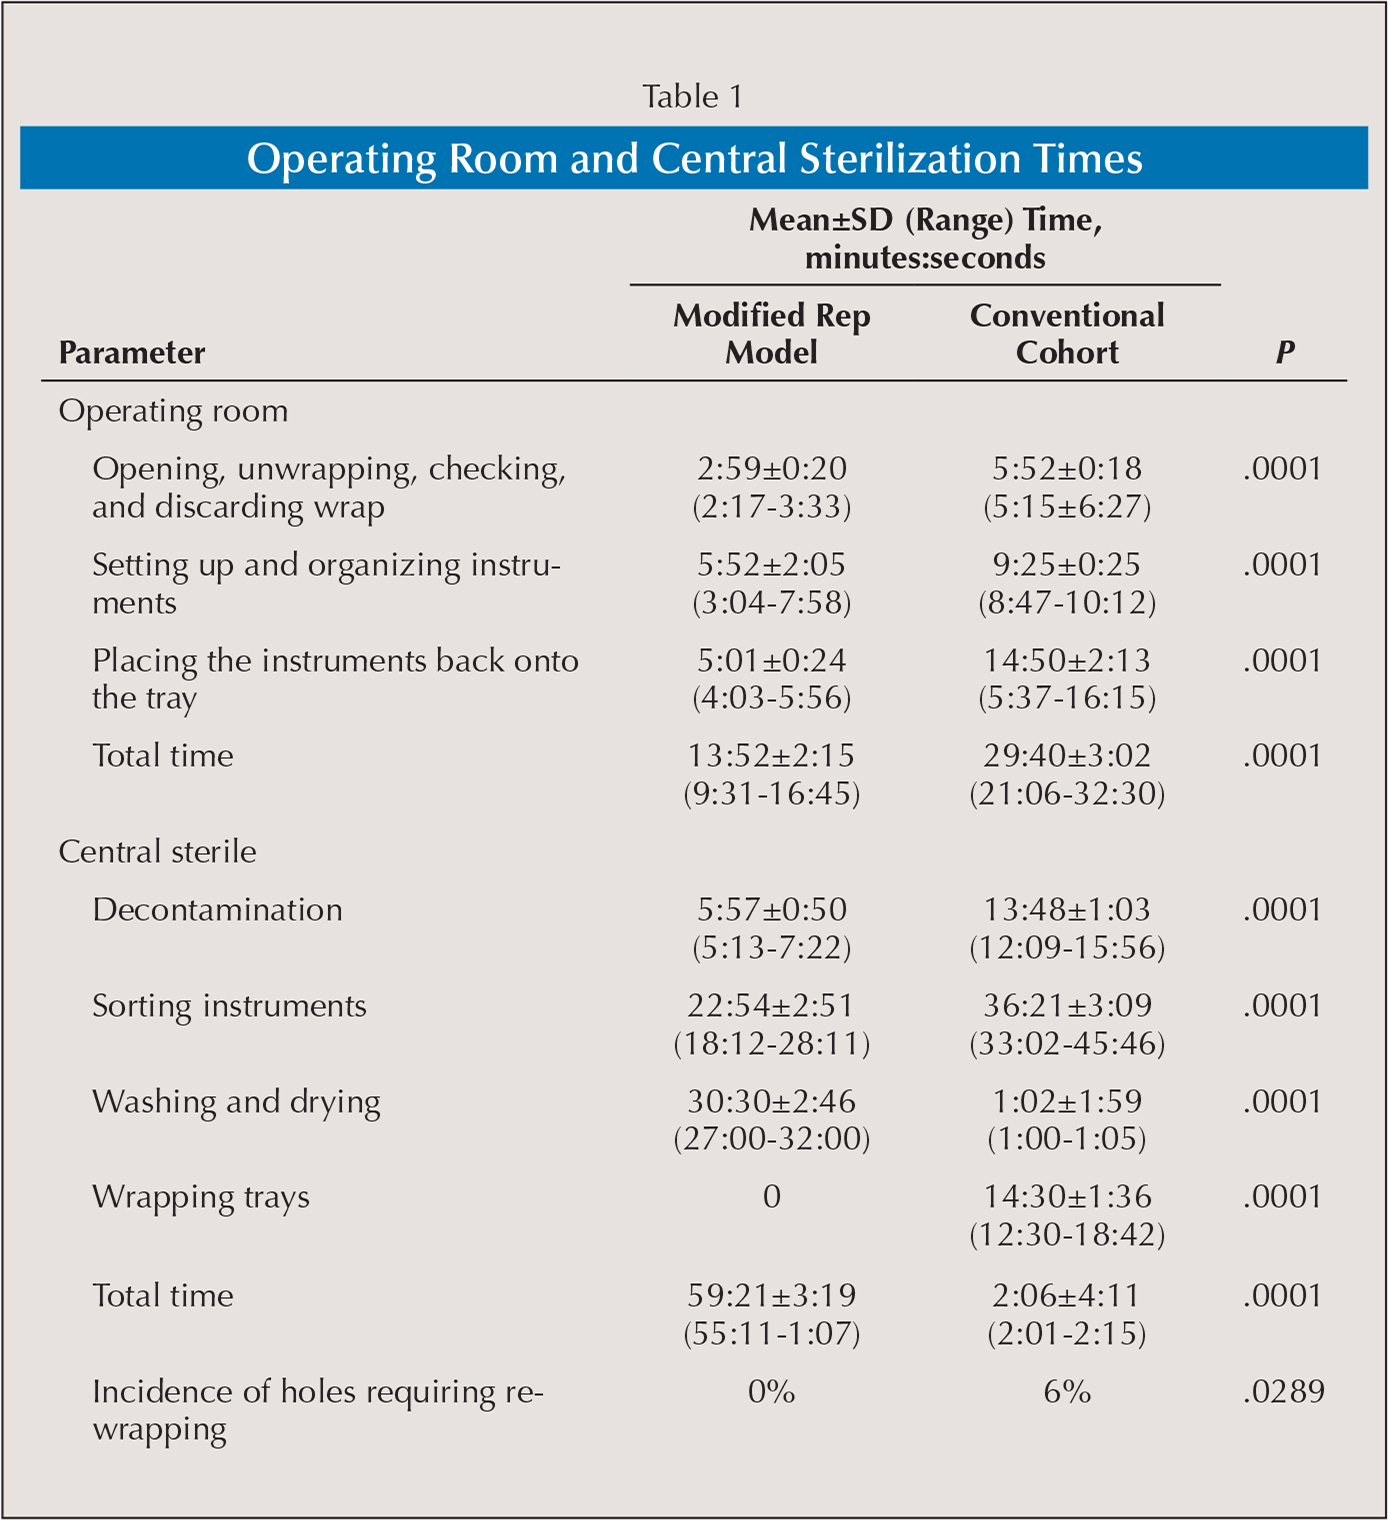 Operating Room and Central Sterilization Times